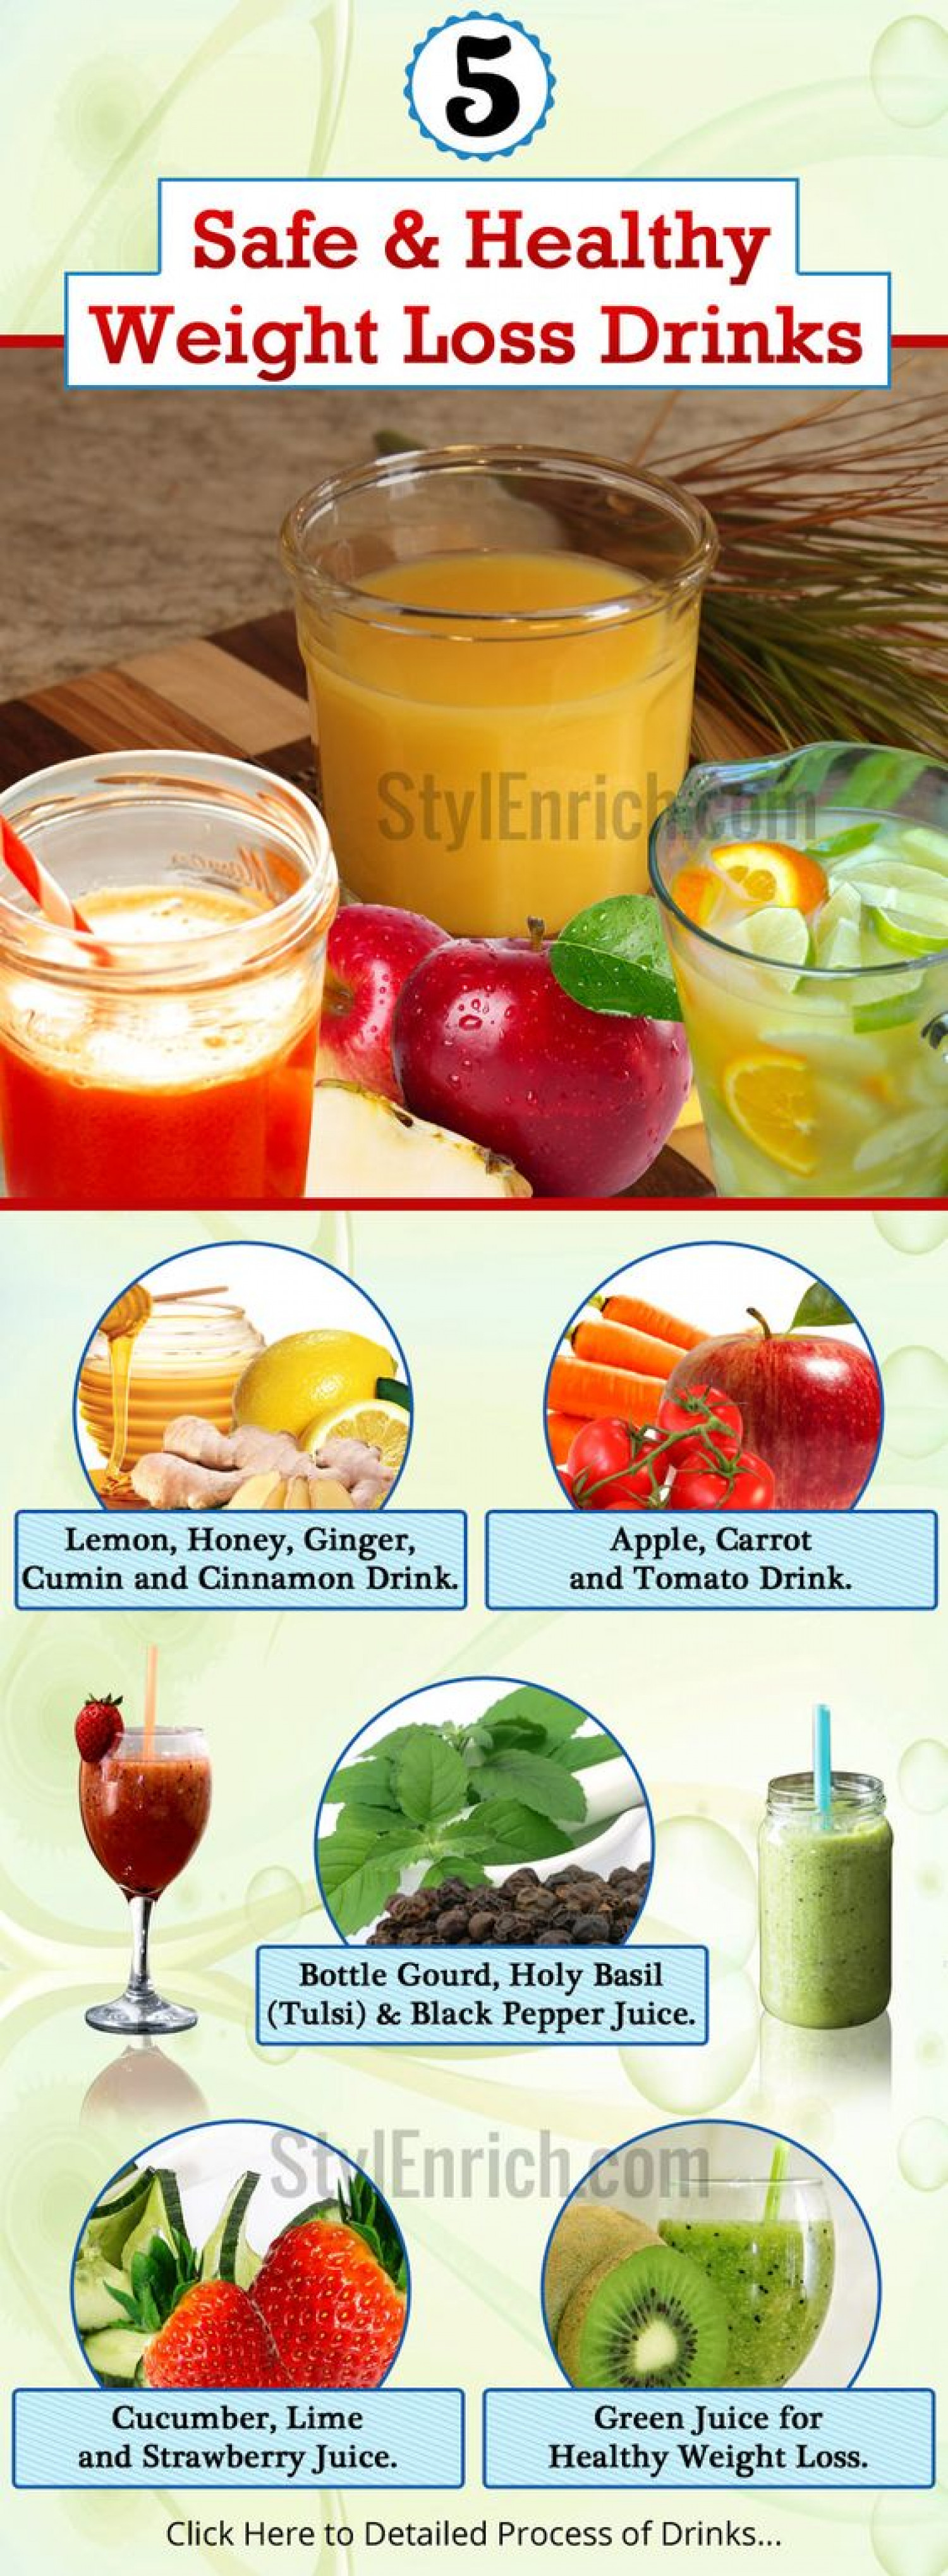 5 Safe & Healthy Weight Loss Drinks Infographic